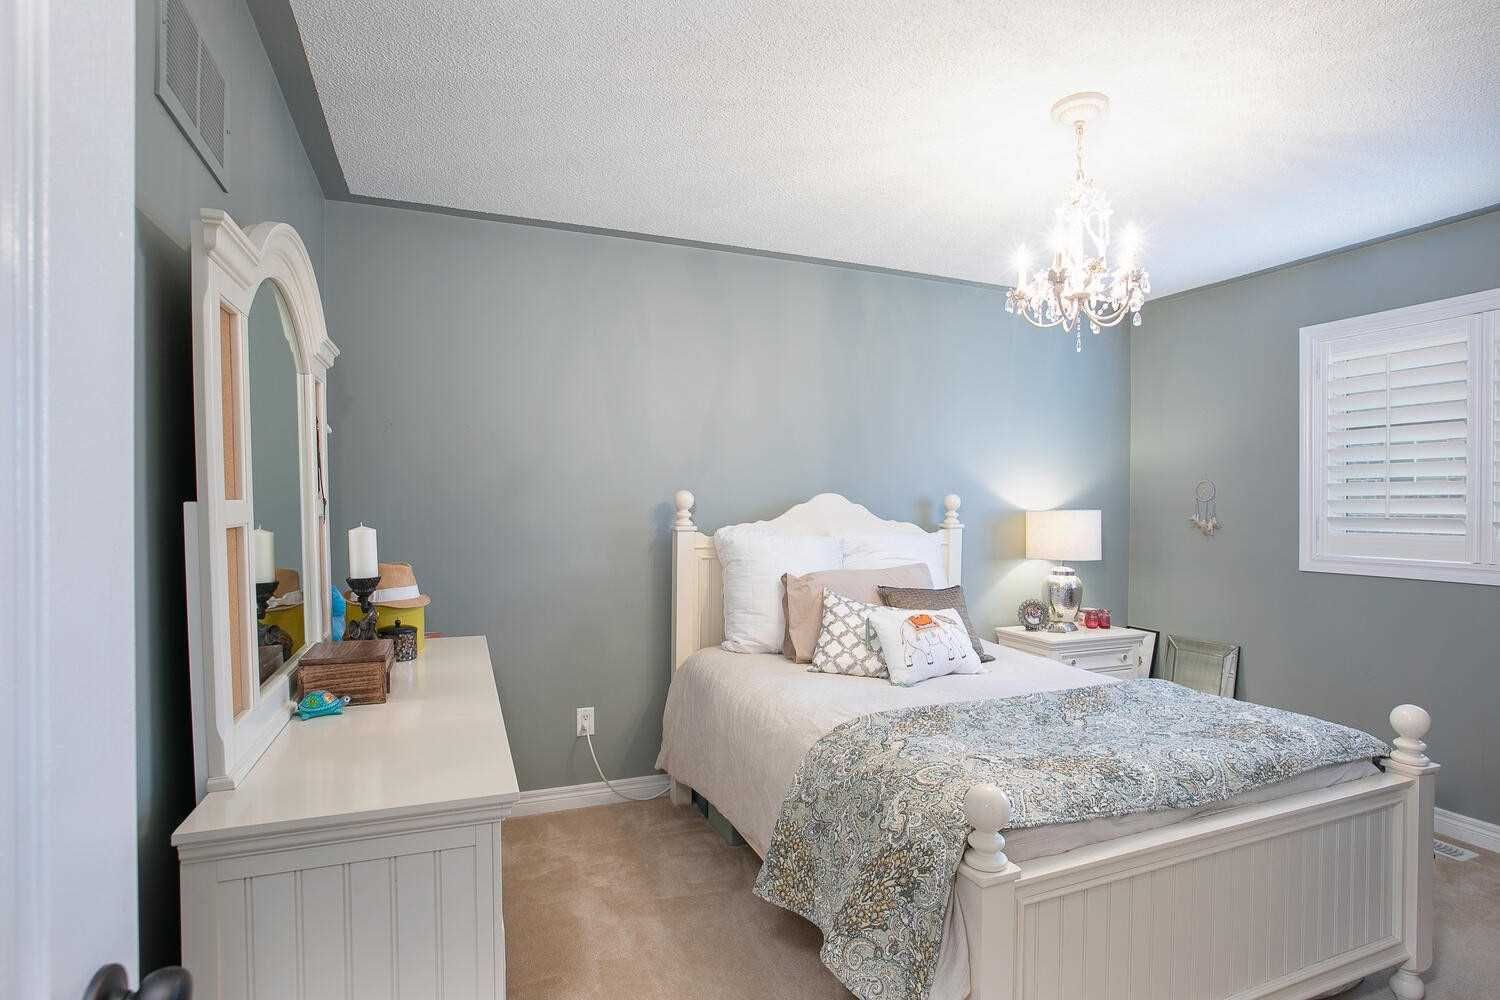 Photo 14: Photos: 190 Dean Burton Lane in Newmarket: Woodland Hill House (2-Storey) for sale : MLS®# N4918510